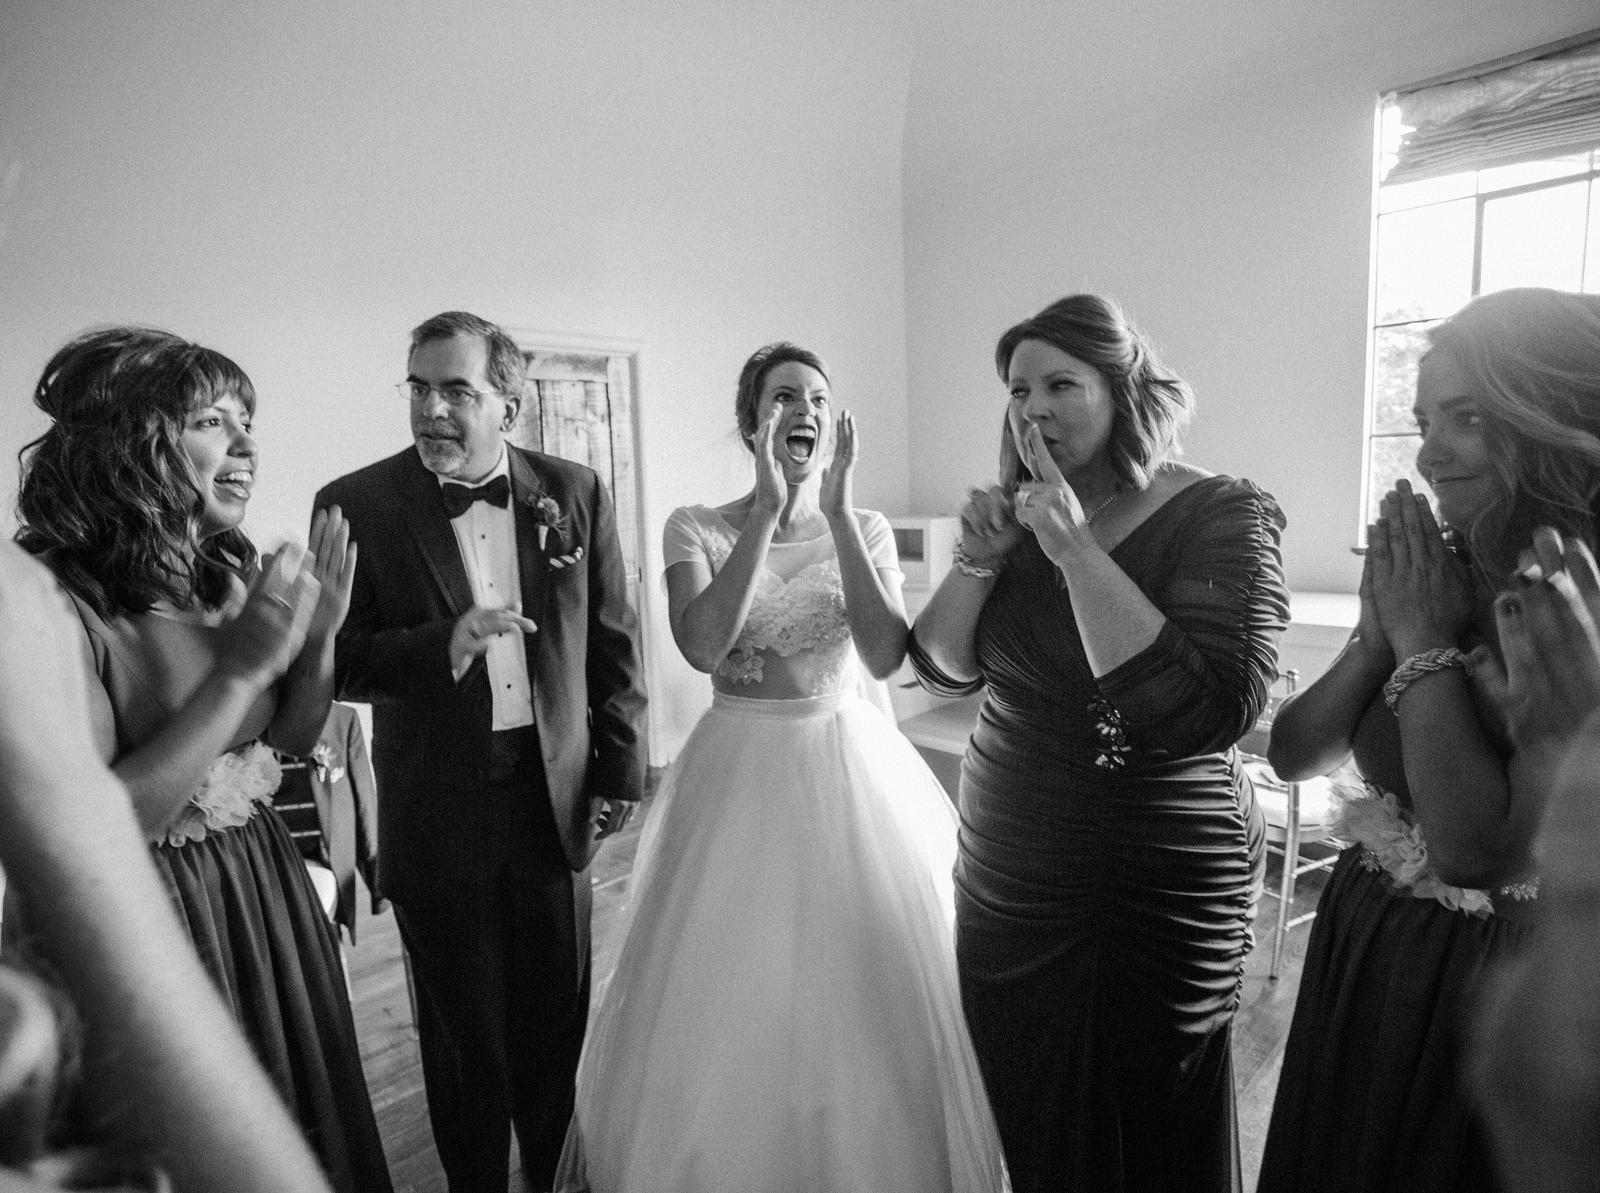 Wedding Photography | A bride, her mother and father and wedding party laughs before the wedding ceremony.